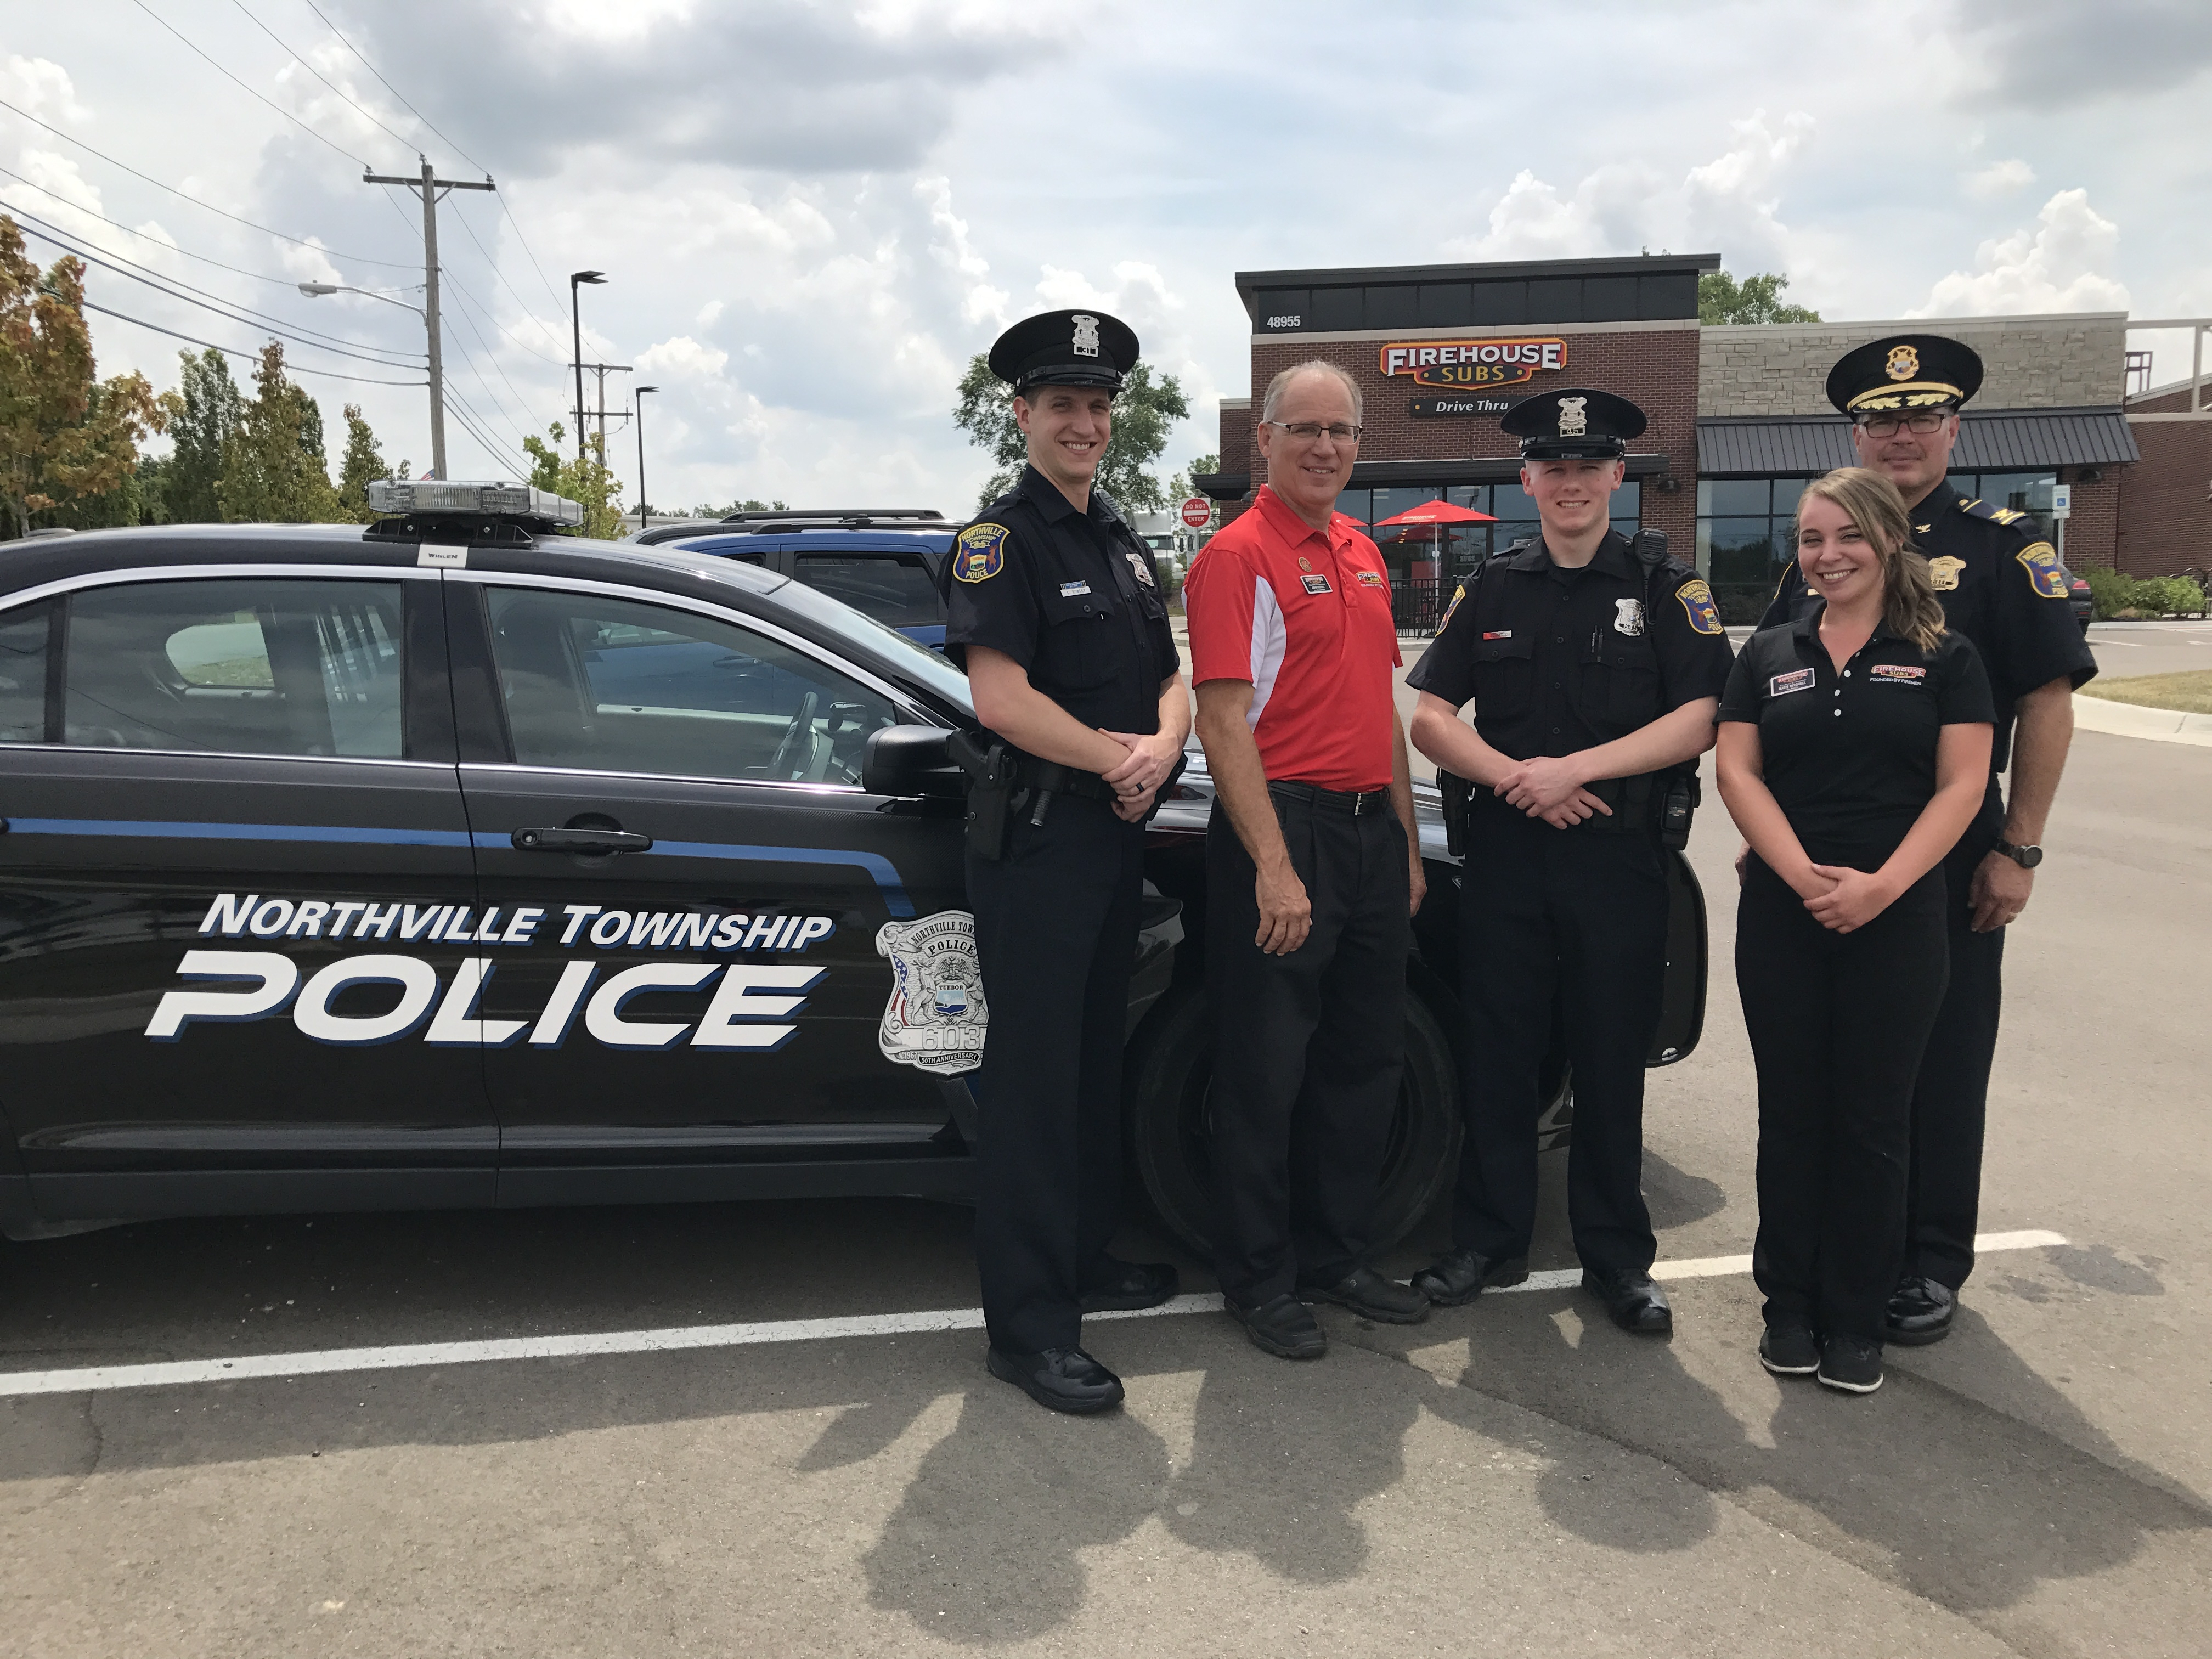 Rookie Police Officer Helps Save a Life